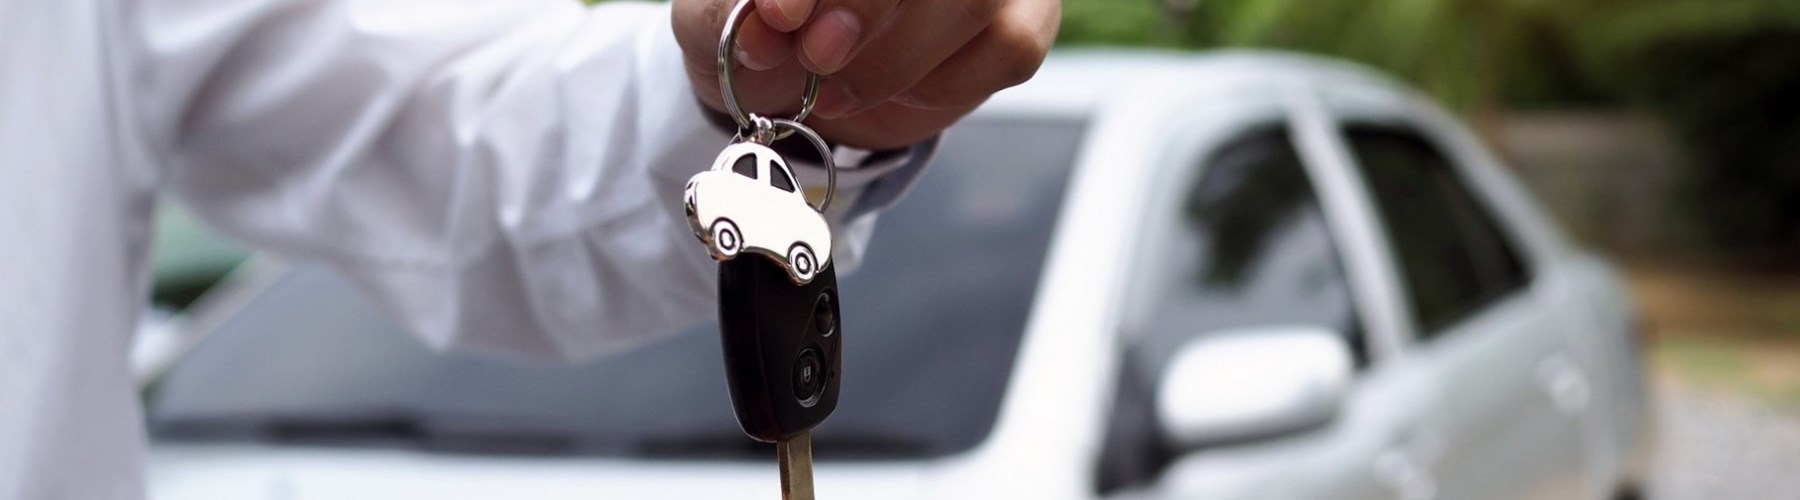 Man handing over car keys in front of silver car